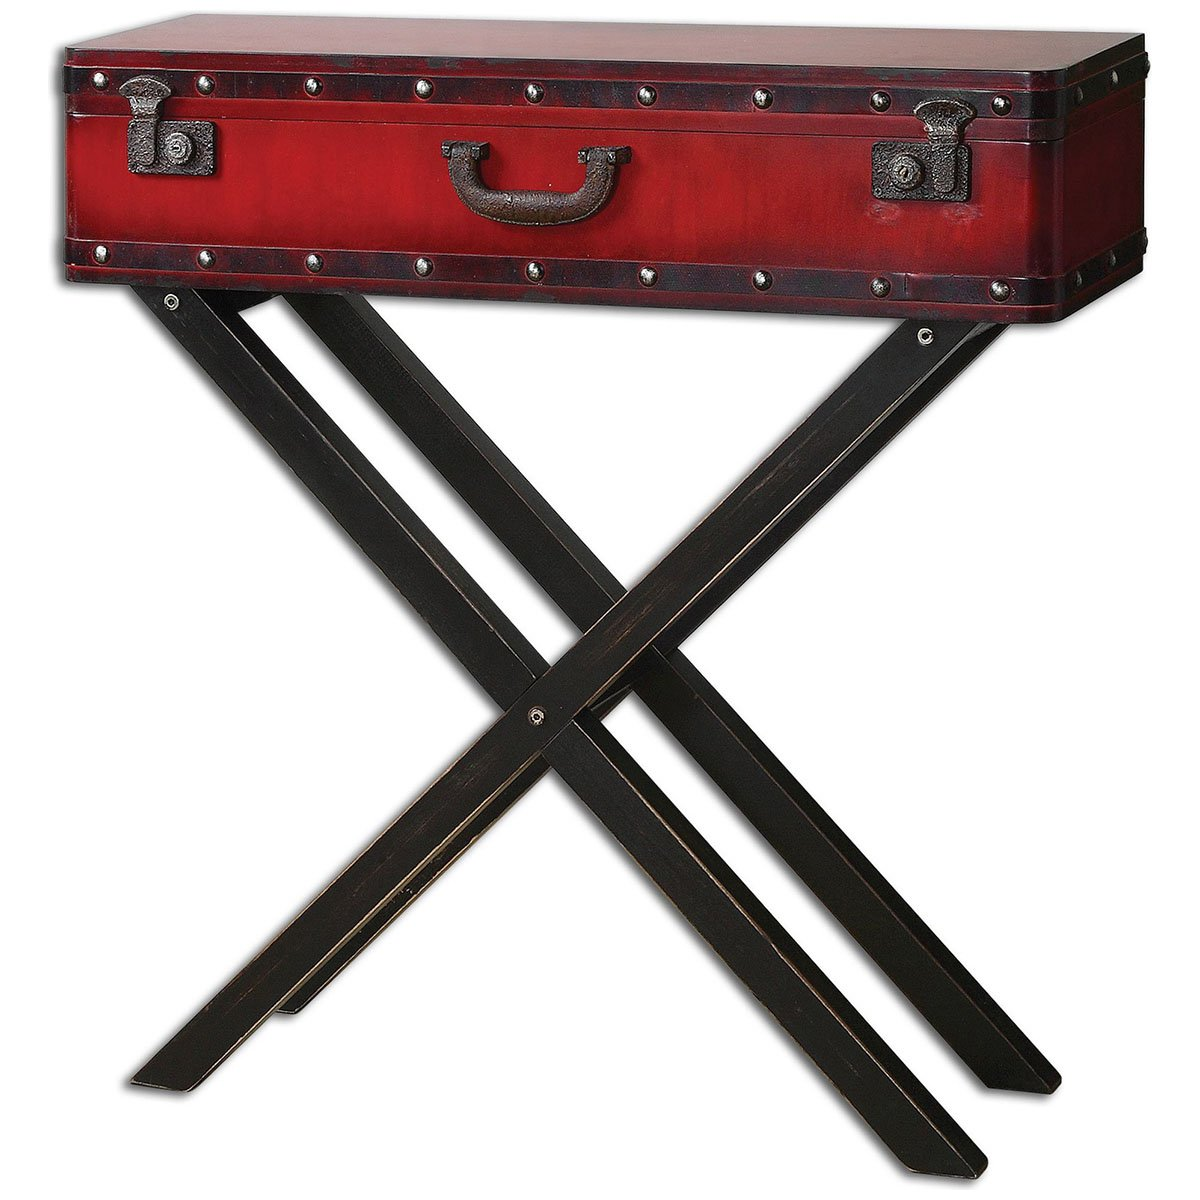 Amazon uttermost 24379 taggart console table red kitchen amazon uttermost 24379 taggart console table red kitchen dining geotapseo Gallery